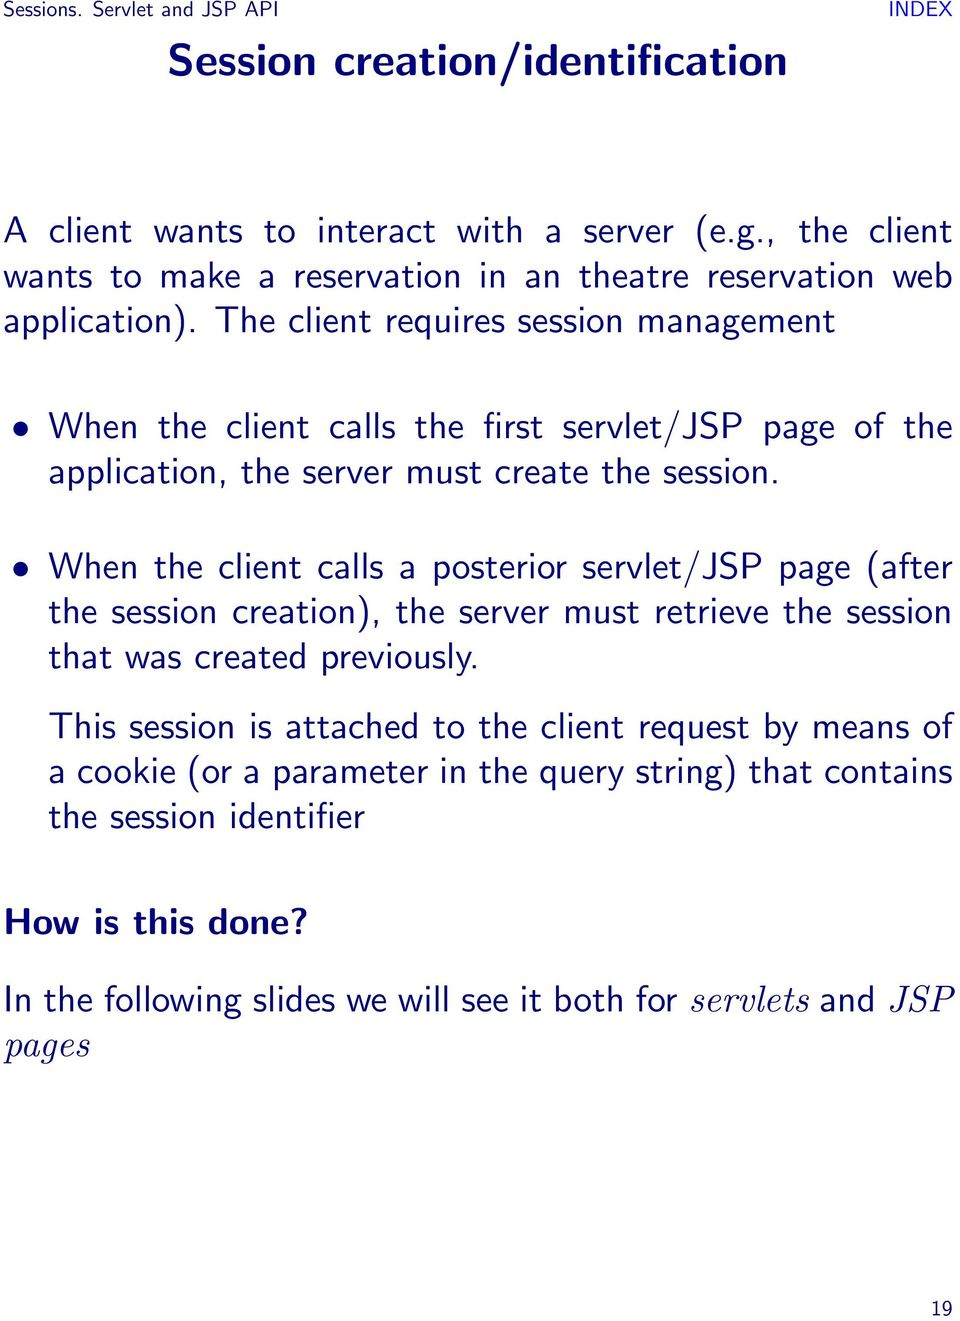 The client requires session management When the client calls the first servlet/jsp page of the application, the server must create the session.